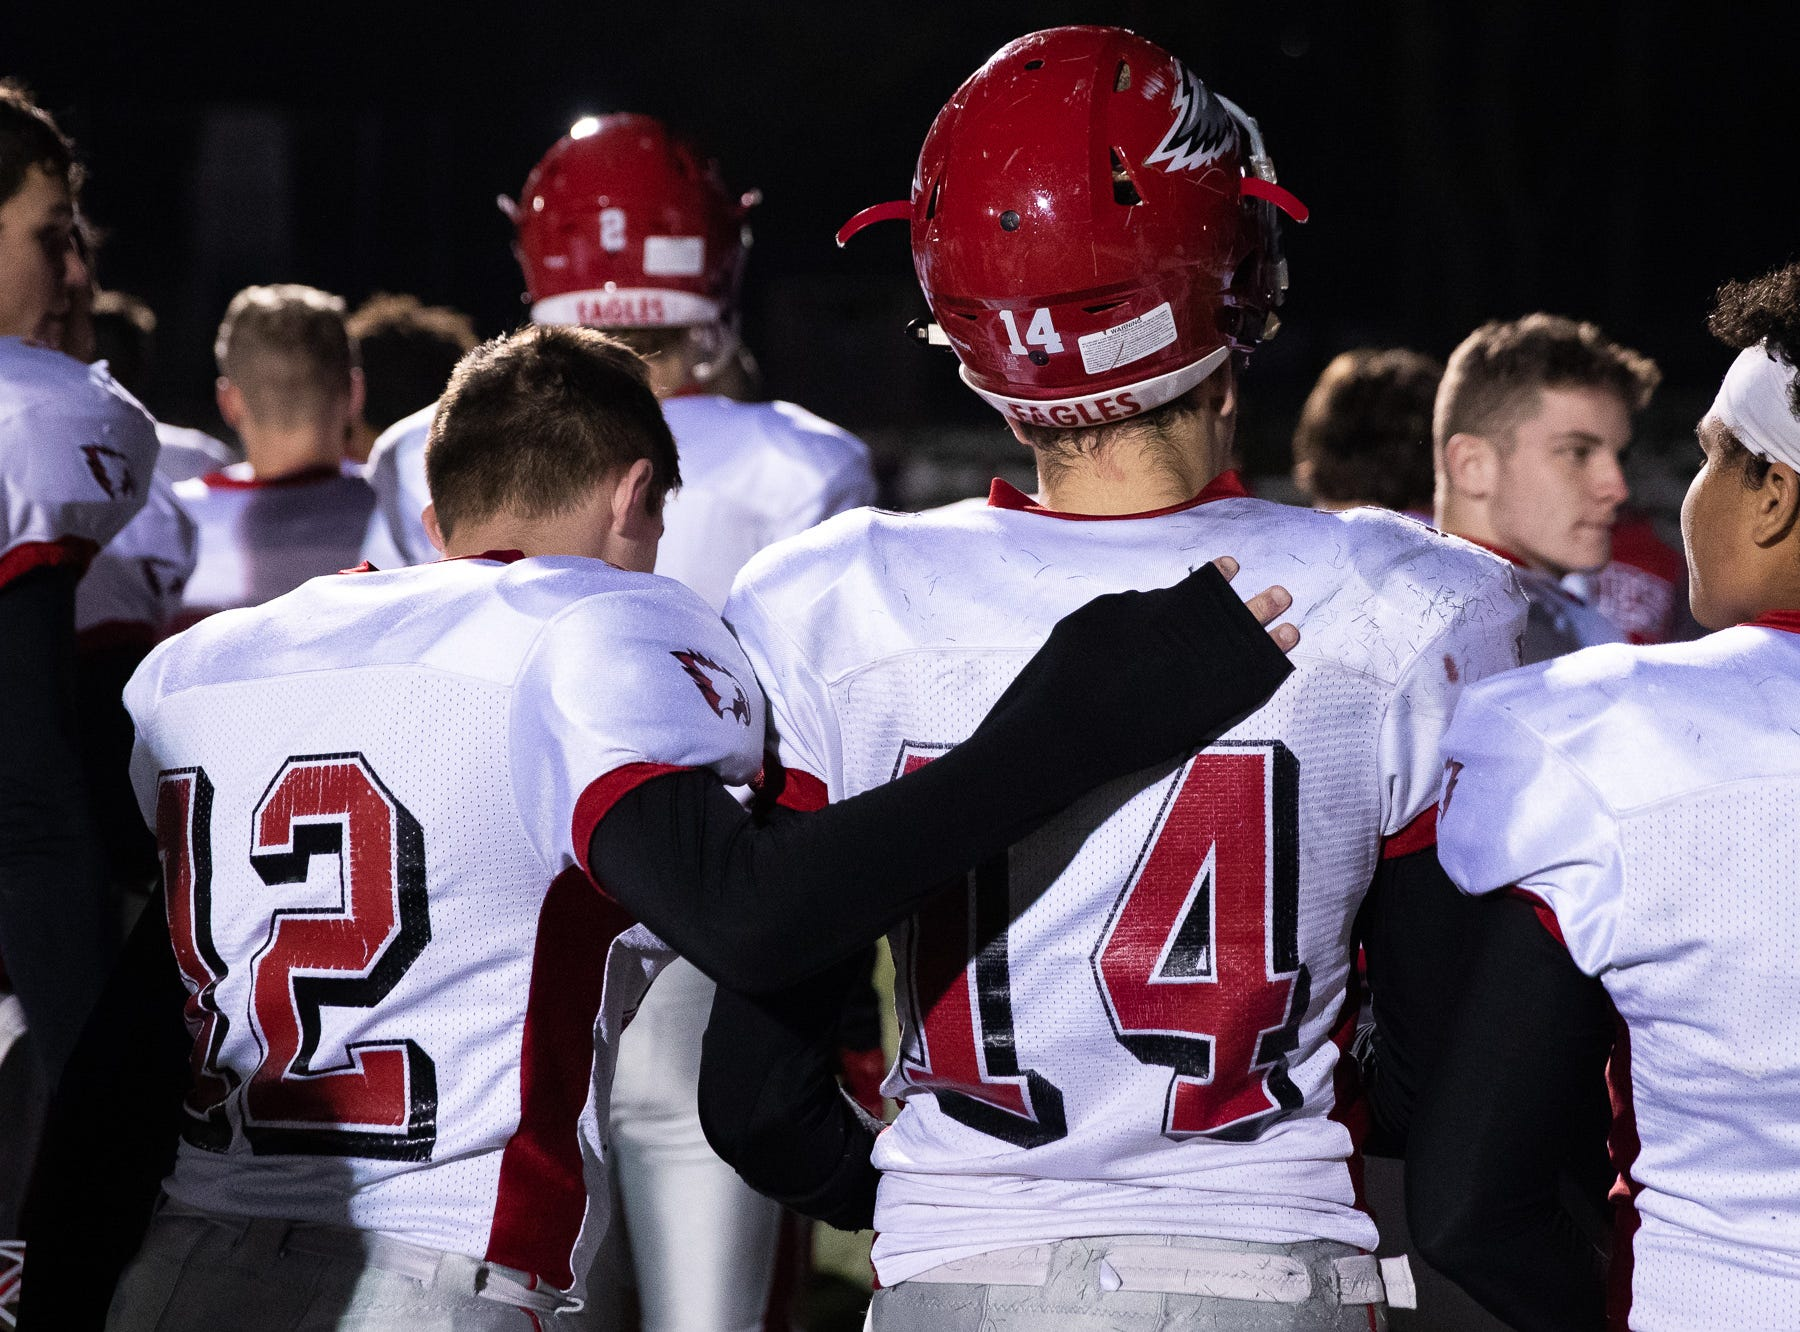 Members of the Bermudian Springs Eagles walk off the field after losing the District 3 Class 3A championship game against Middletown, Saturday, Nov. 17, 2018, at Cedar Crest High School. The Middletown Raiders defeated the Bermudian Springs Eagles 41-20 to win the title.